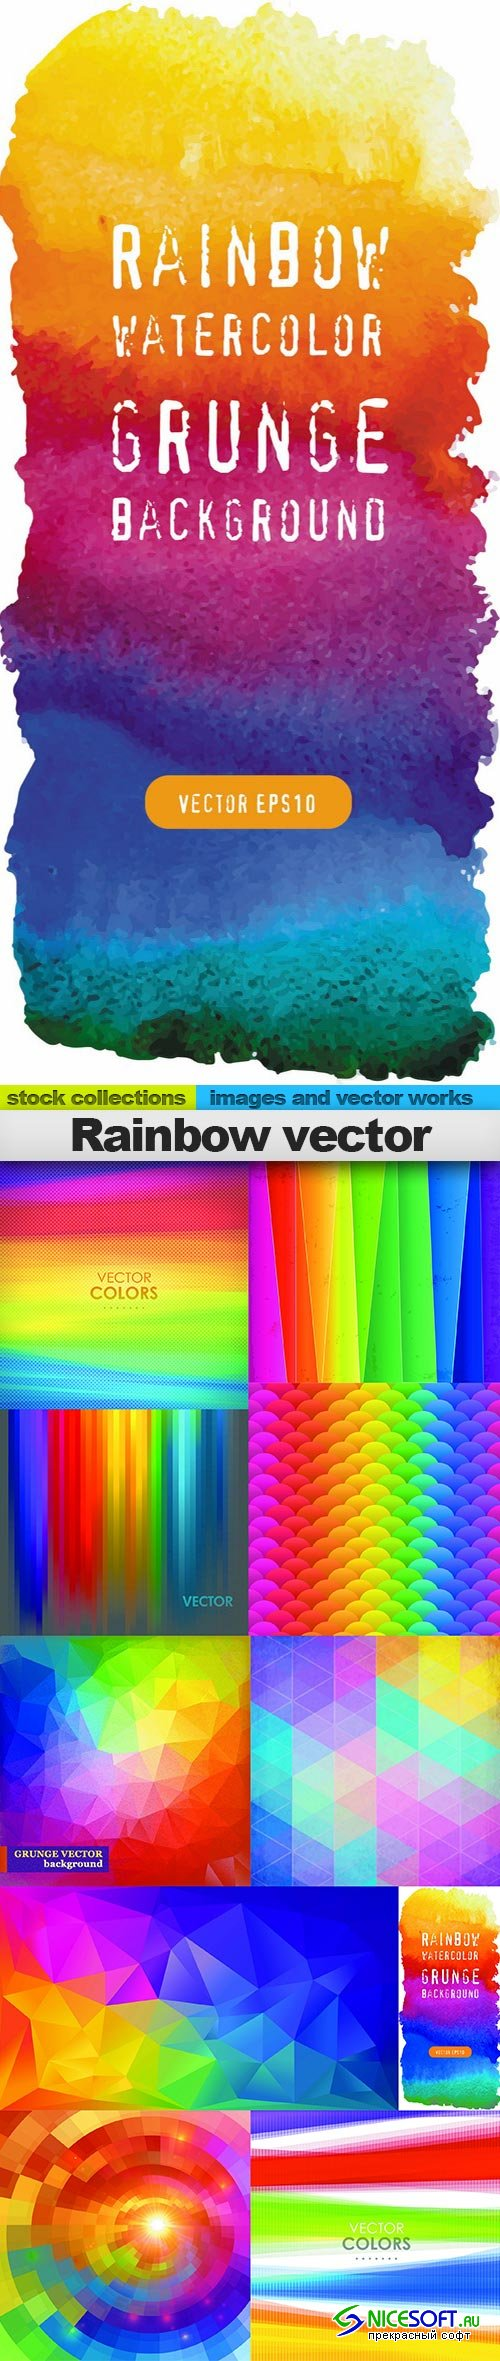 Rainbow vector, 10 x EPS